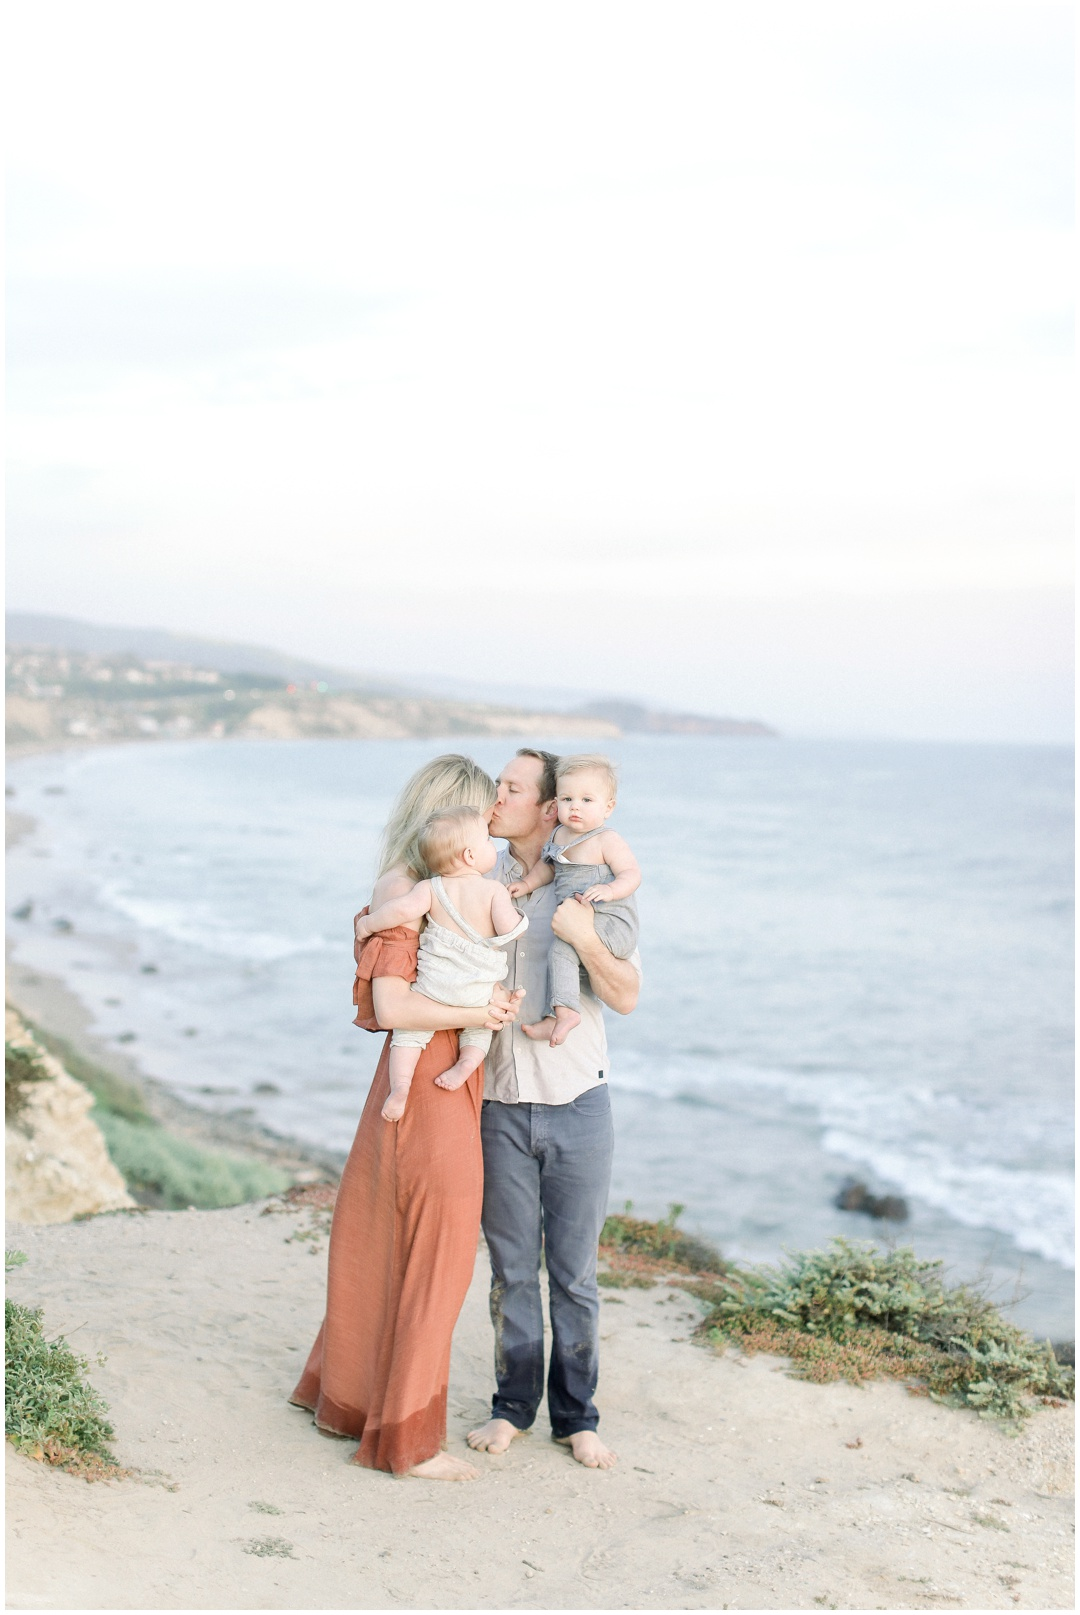 Newport_Beach_Newborn_Light_Airy_Natural_Photographer_Newport_Beach_Photographer_Orange_County_Family_Photographer_Cori_Kleckner_Photography_Huntington_Beach_Photographer_Family_OC_Newborn_Kelly_Bandak_Nik_Bandak__3527.jpg